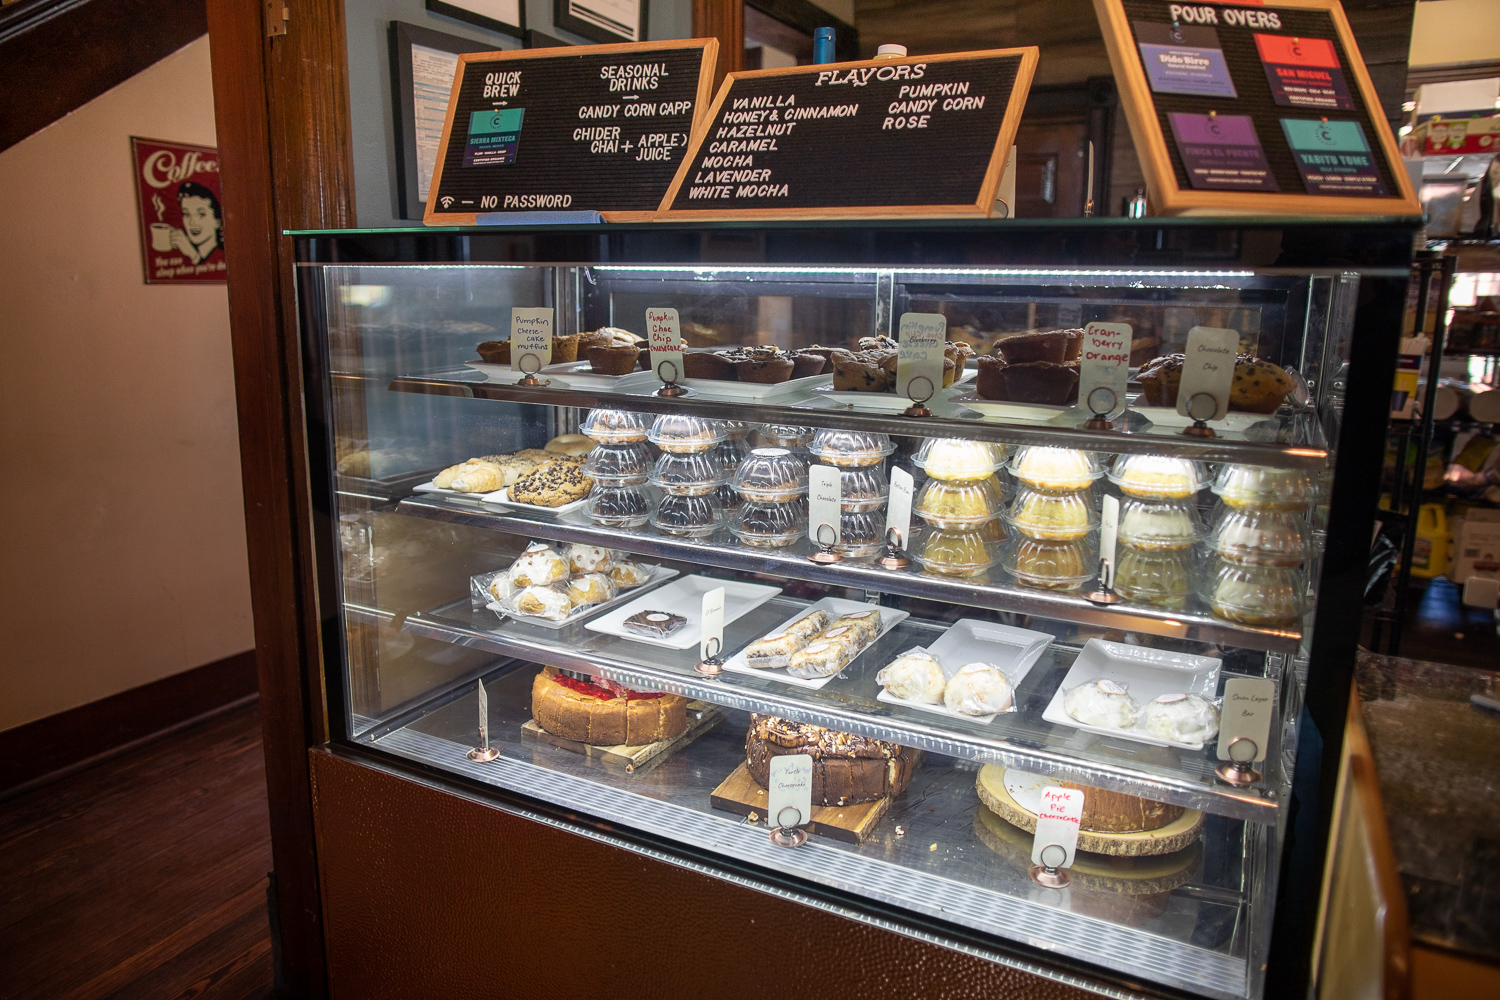 Dessert items on display at Boulder Creek coffee.